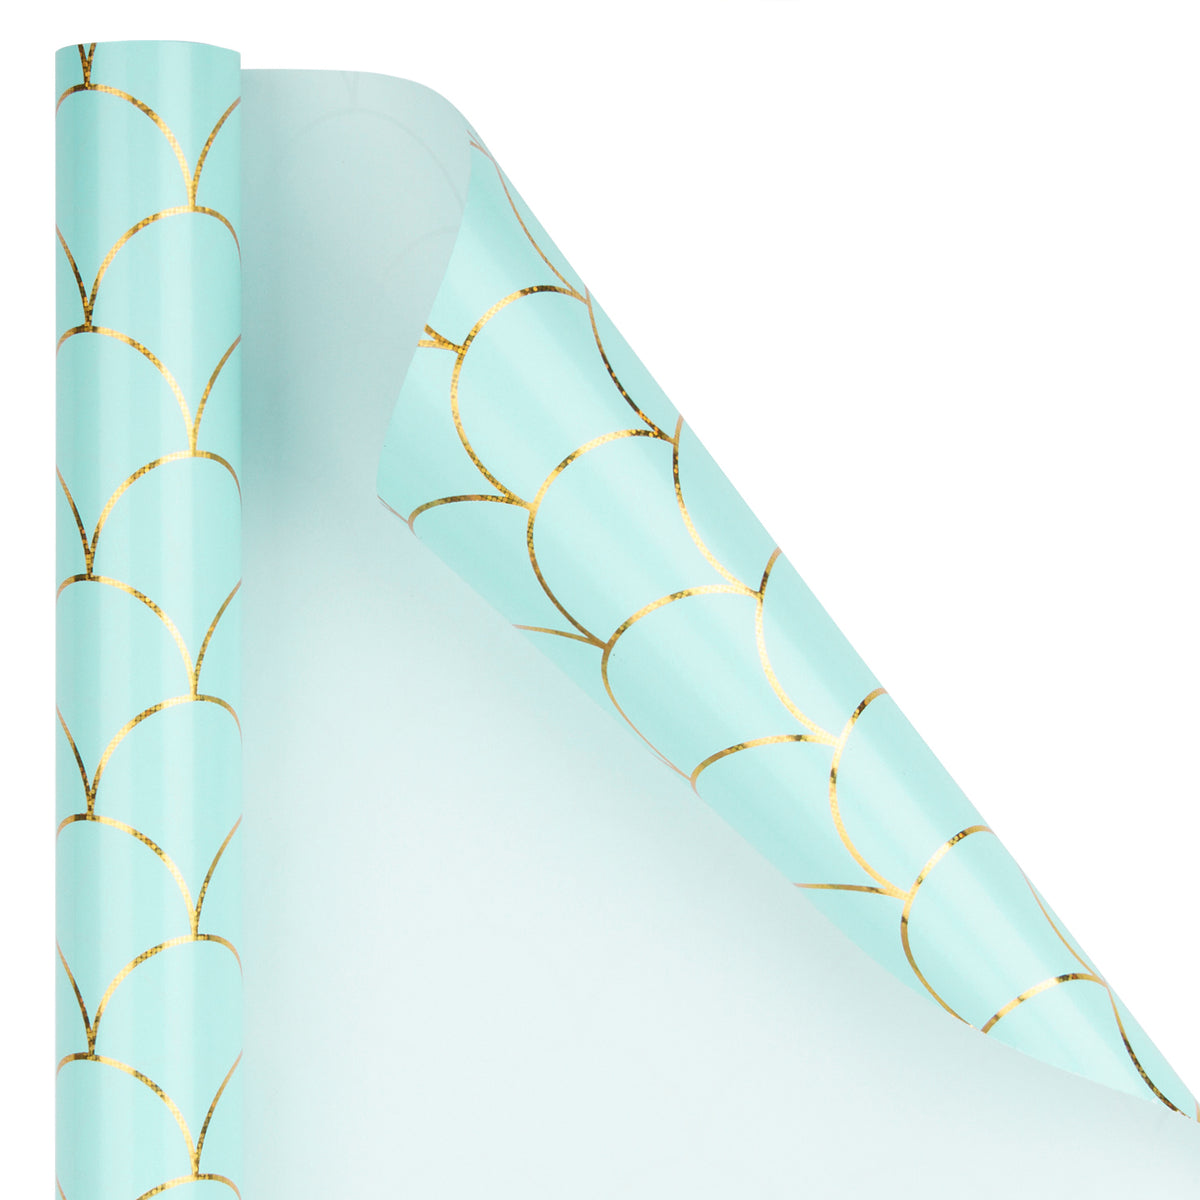 Wrapaholic-Mint-Color -with-Gold-Foil- Mermaid-Design-Gift- Wrapping -Paper-Roll-2